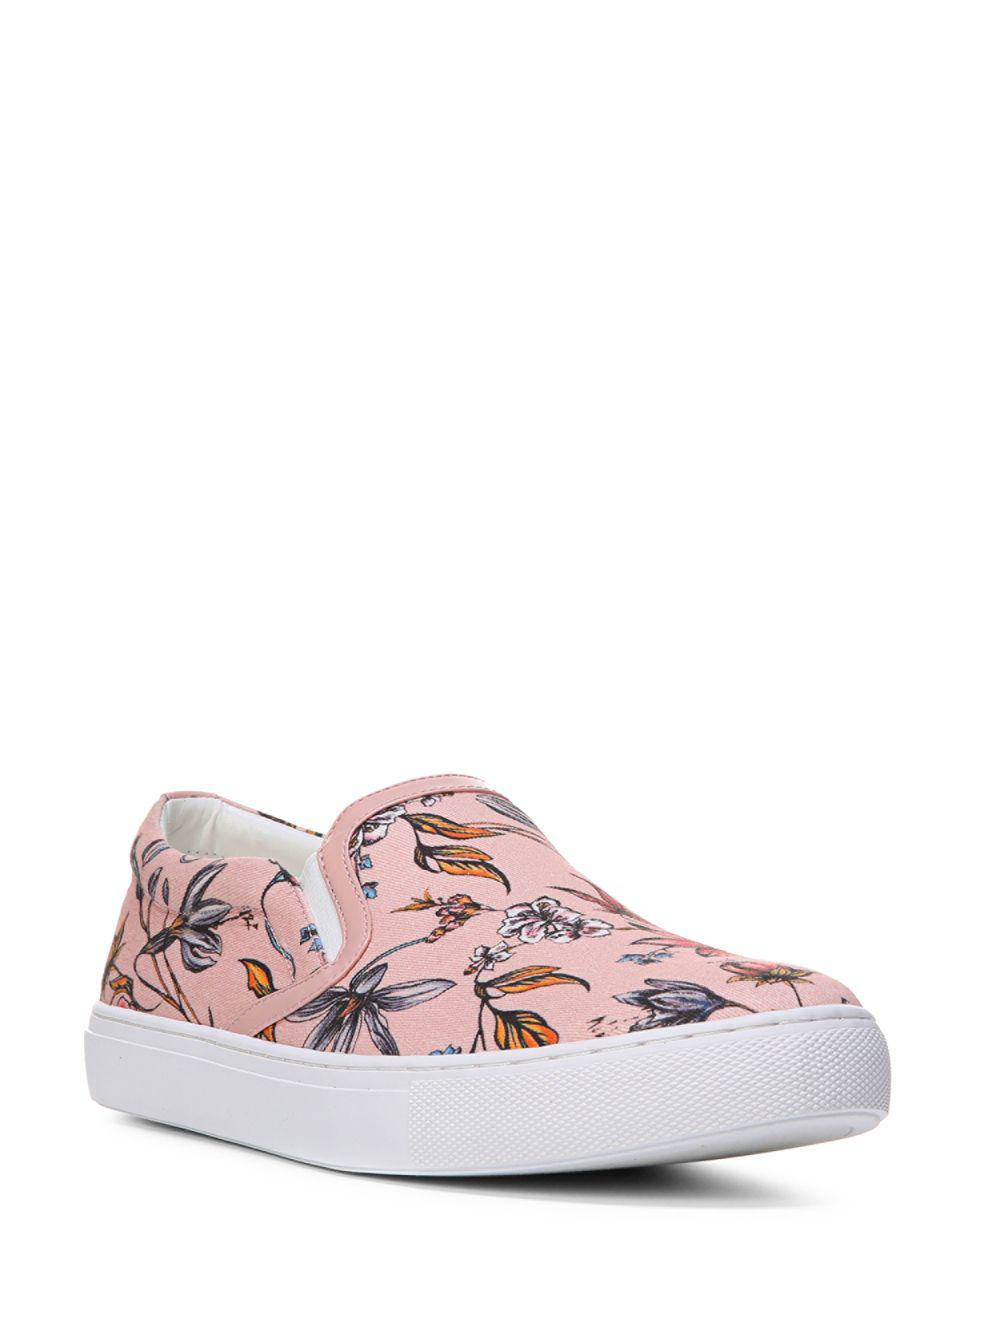 b71279955d8a14 Lyst - Sam Edelman Pixie Floral-print Slip-on Sneakers in Pink